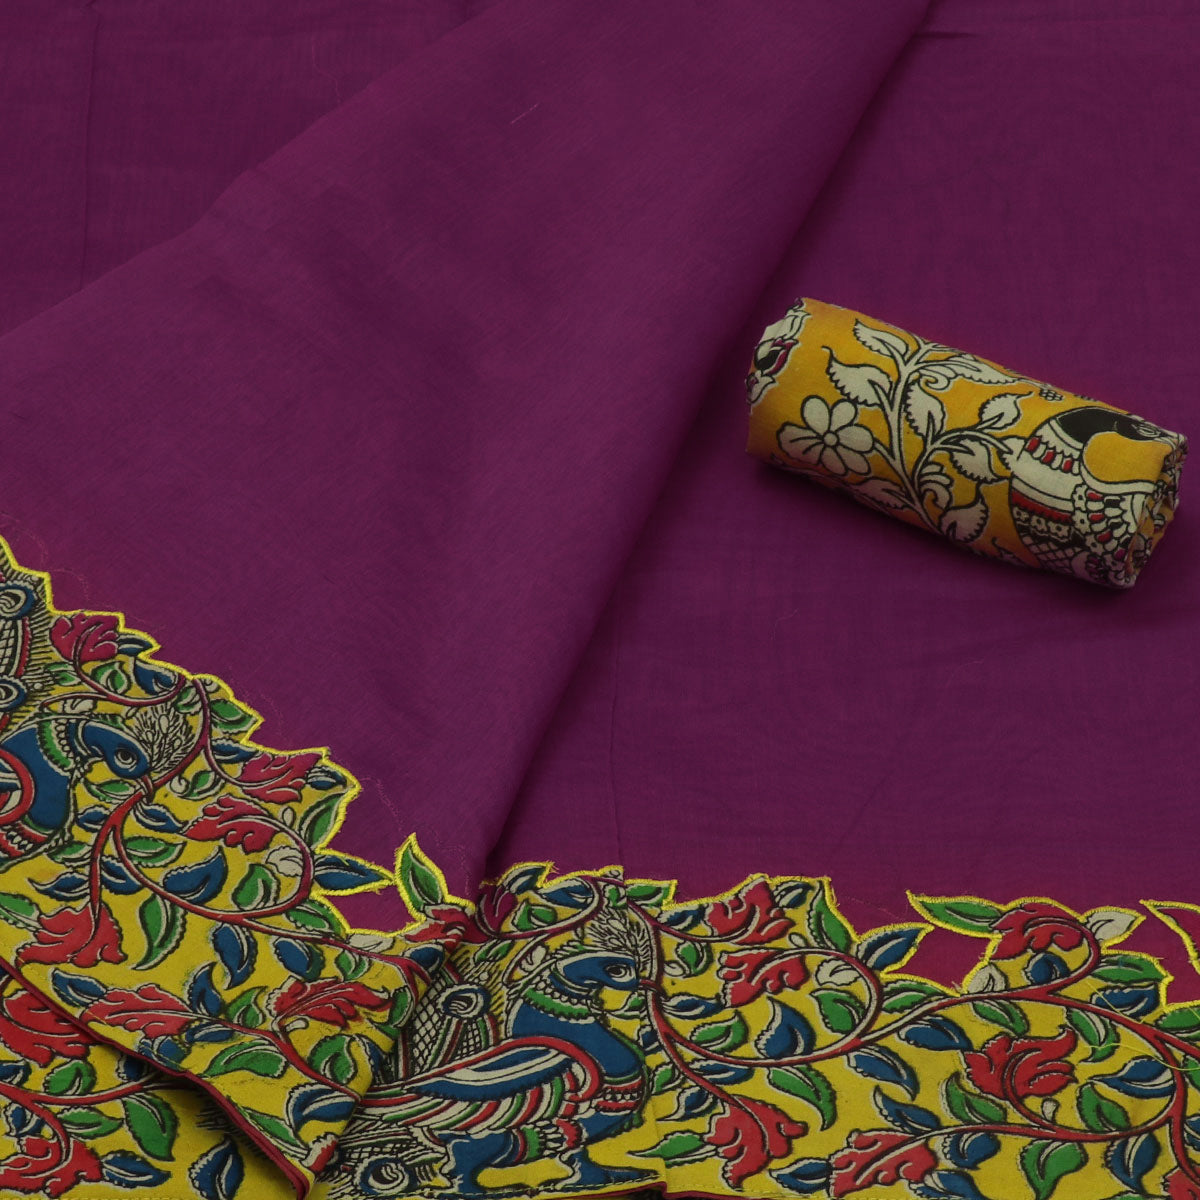 Kalamkari Saree Violet with kalamkari applique work